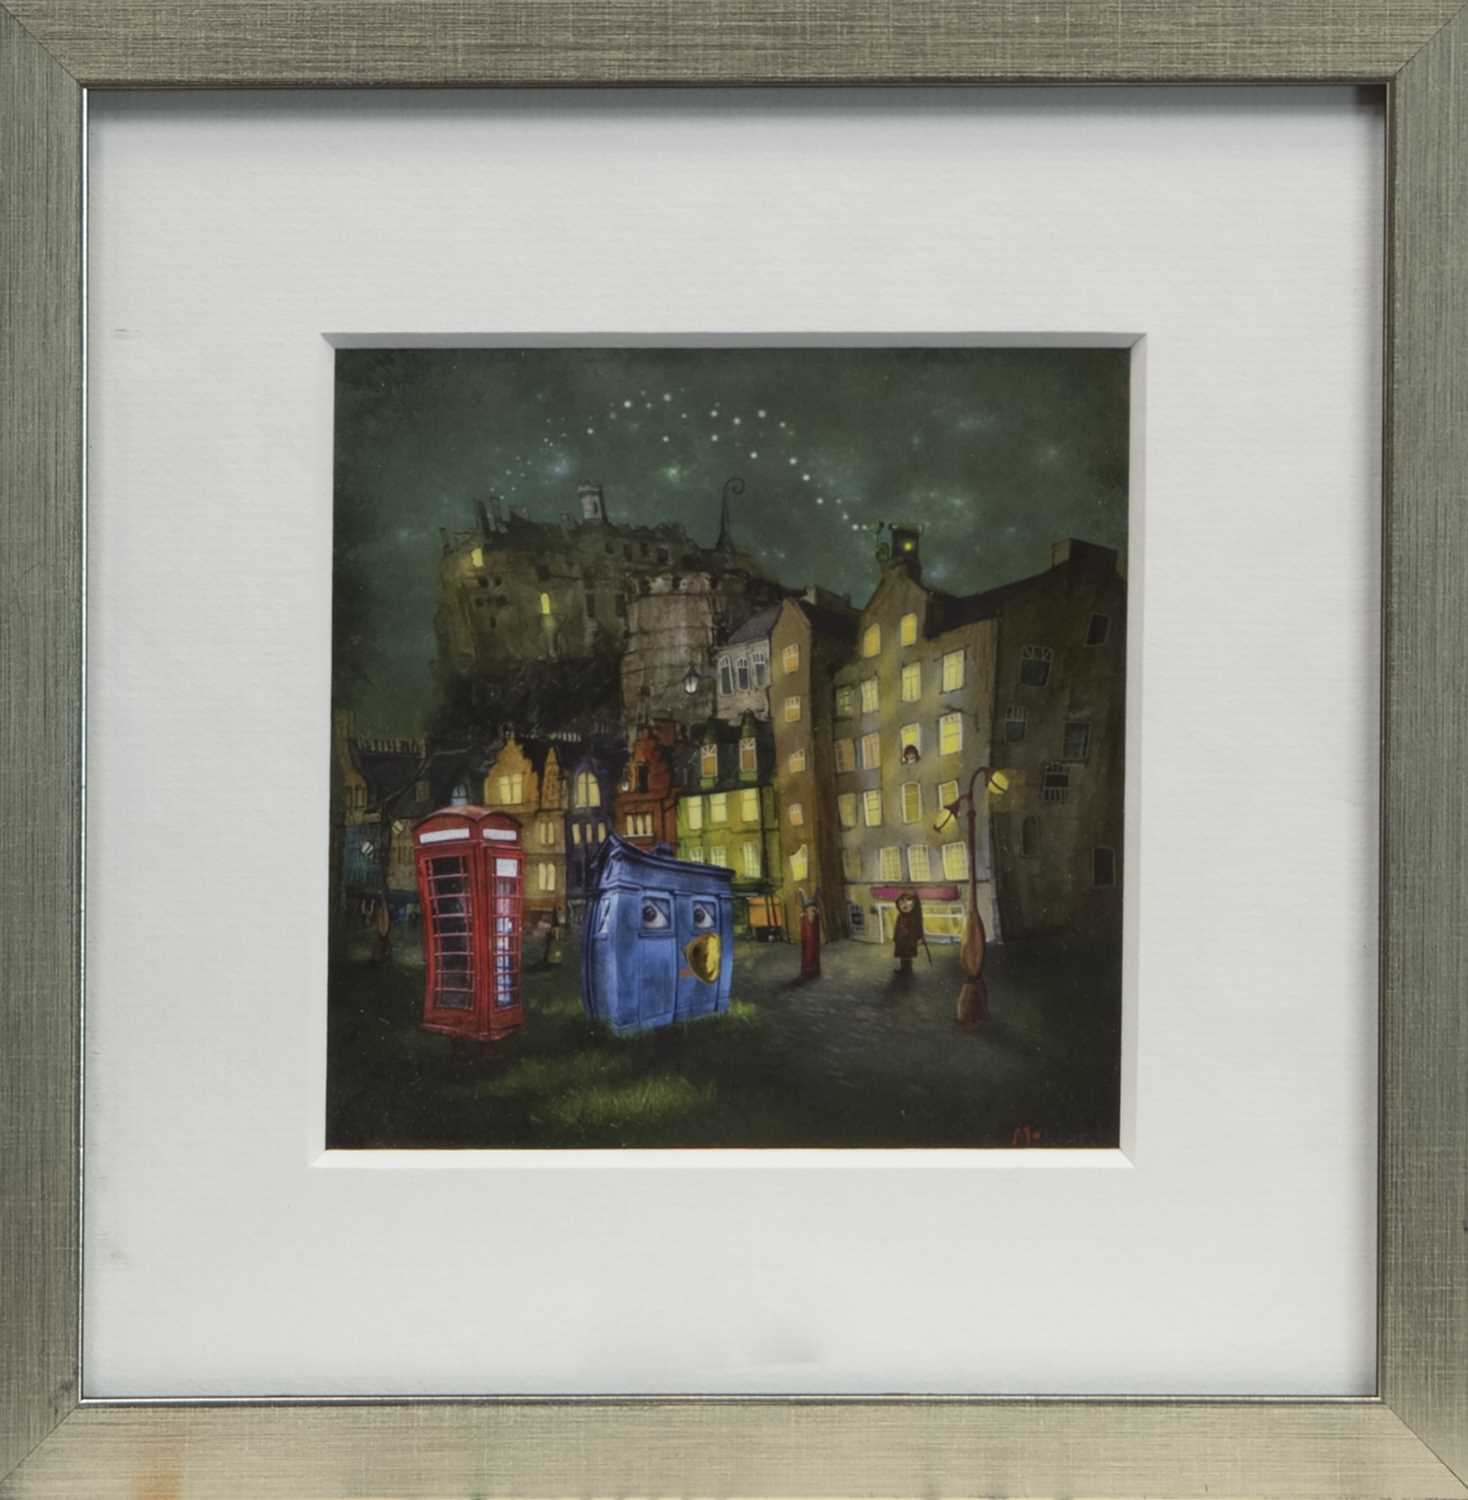 Lot 106 - THE CITY AT NIGHT, A FRAMED PRINT